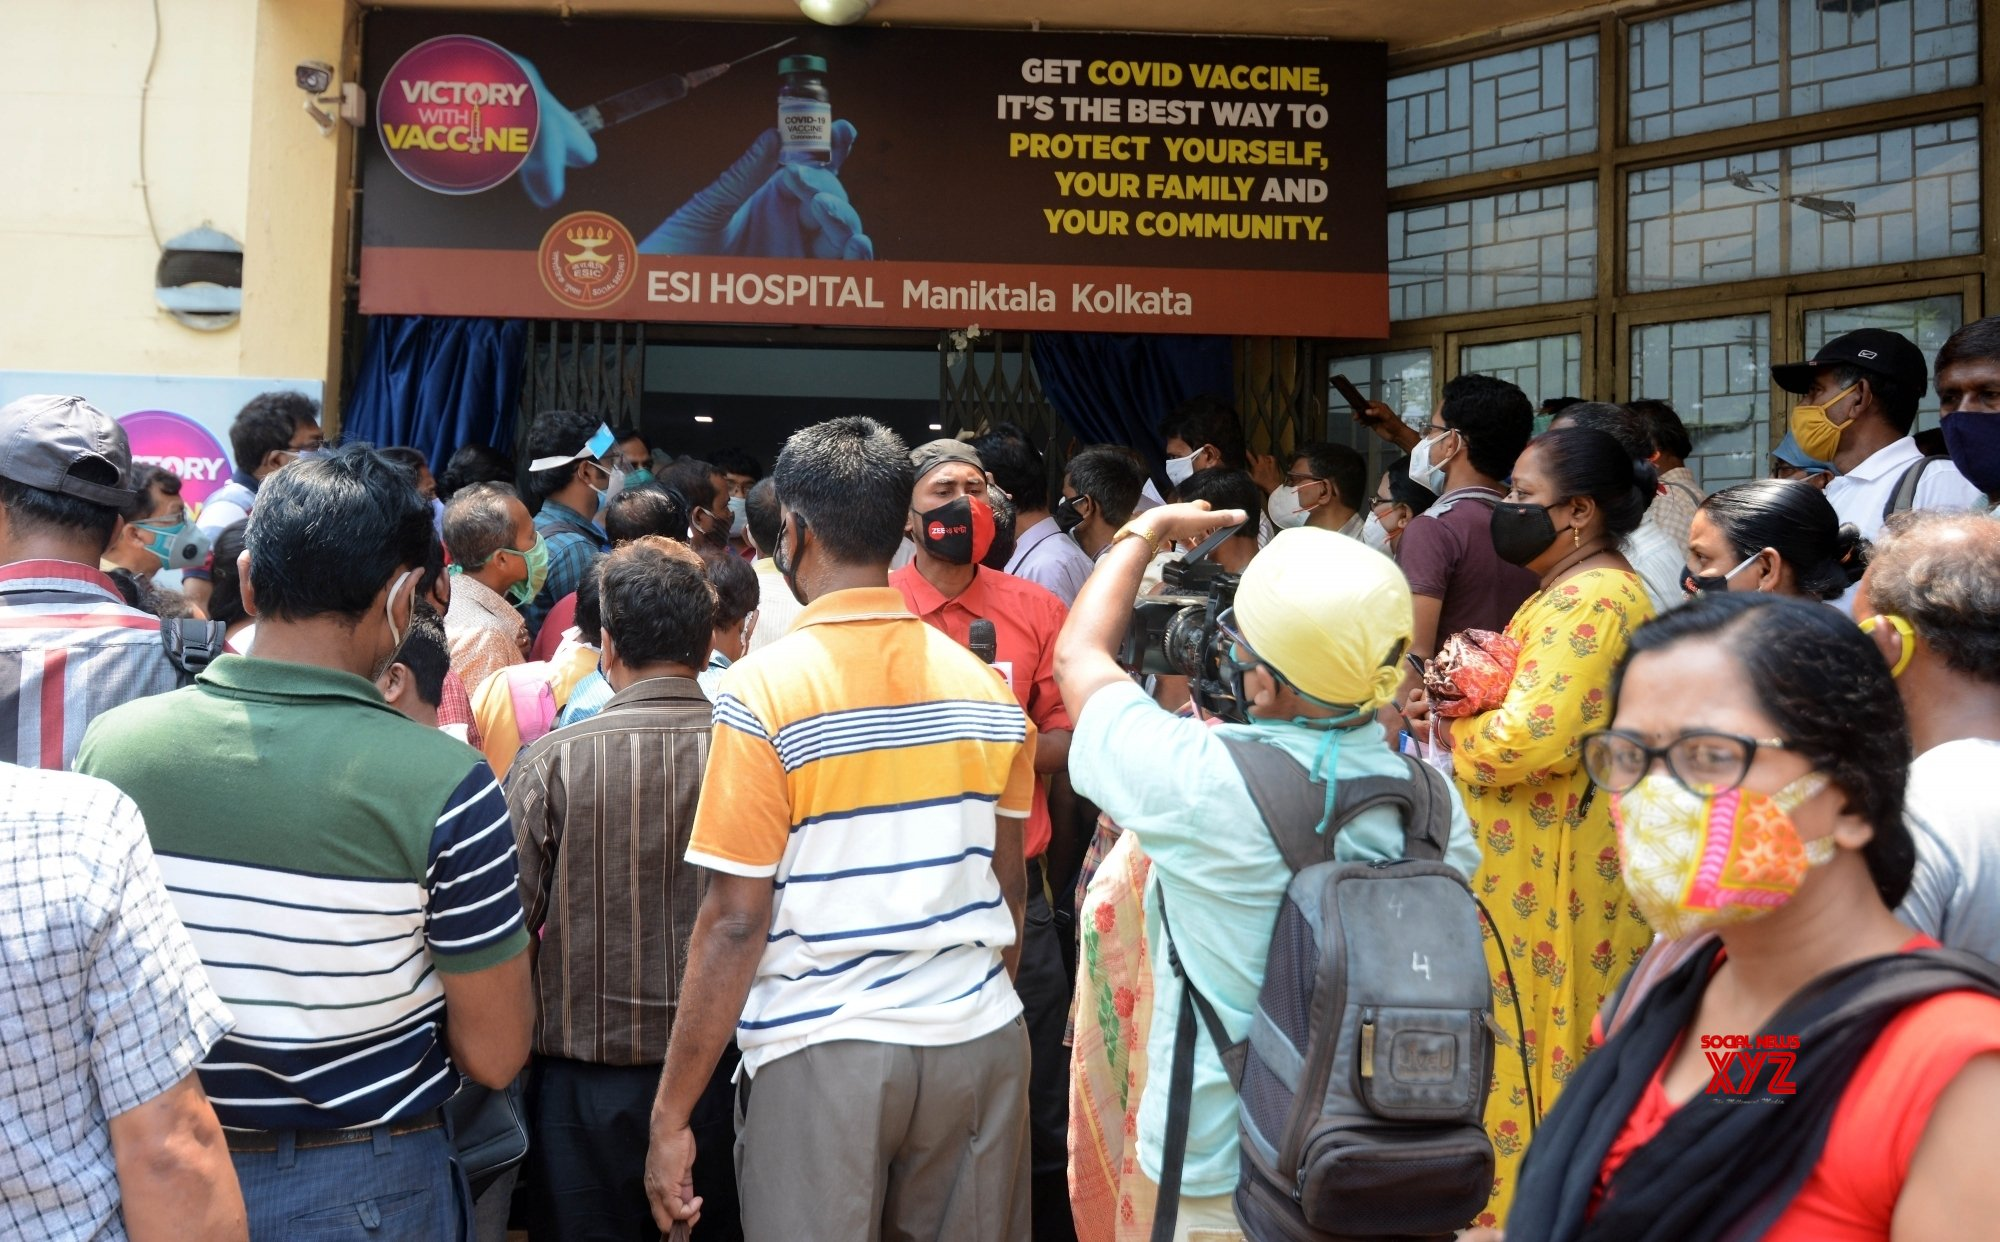 Kolkata : People agitated in front of ESI for not getting COVID vaccine in Kolkata on May 3, 2021. #Gallery